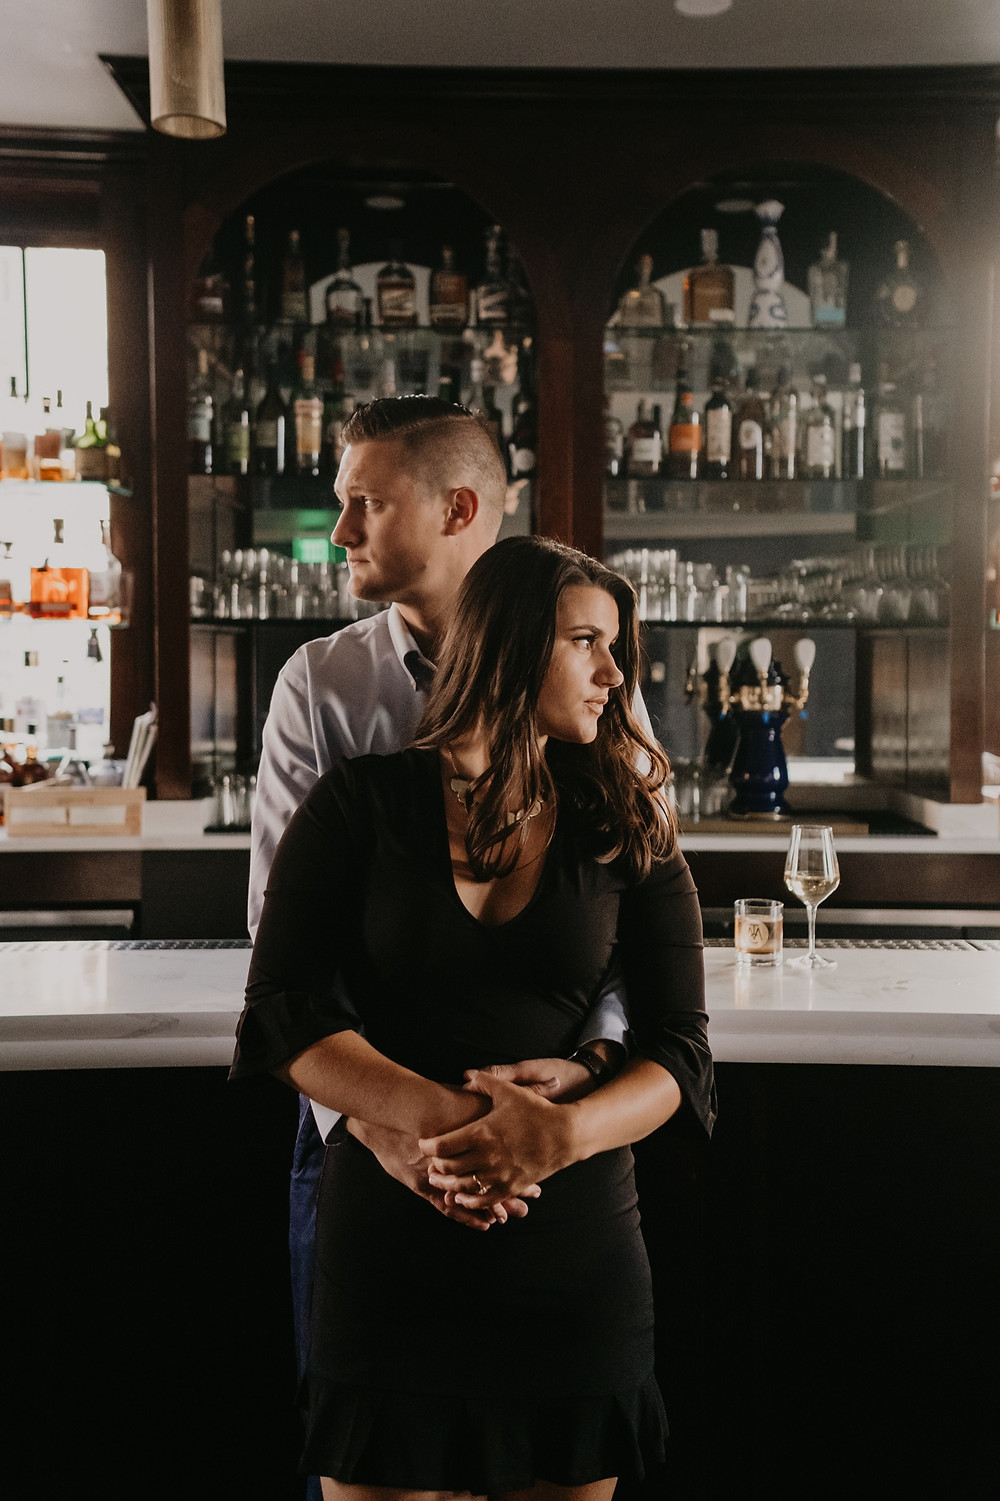 Engagement session with couple at The Monarch Club in Detroit. Photographed by Nicole Leanne Photography.